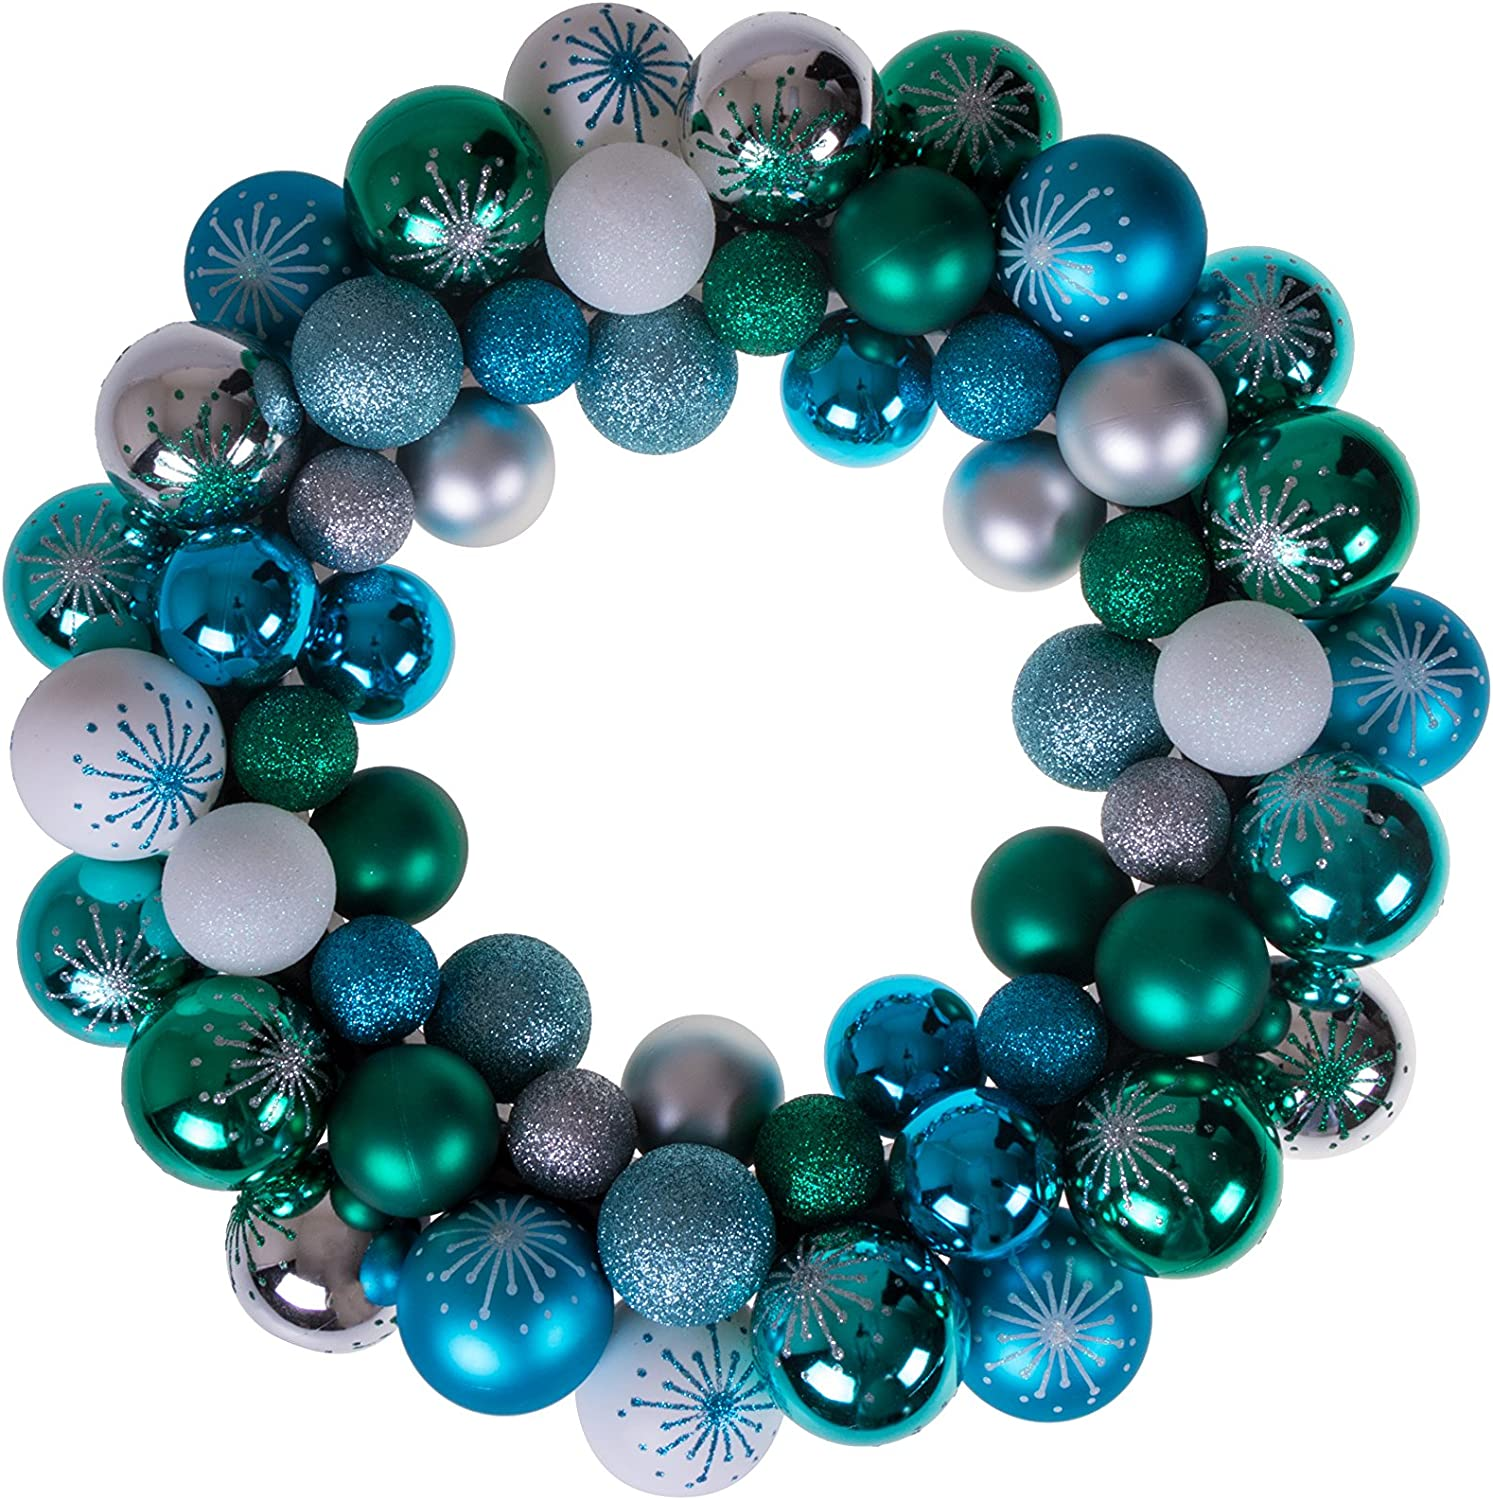 "Clever Creations Christmas Ornament Wreath Blue, Green, White & Silver | Festive Holiday Décor | Modern Theme | Lightweight Shatter Resistant | Indoor/Outdoor Various Use | 13.5"" x 13.5"" x 2.75"""